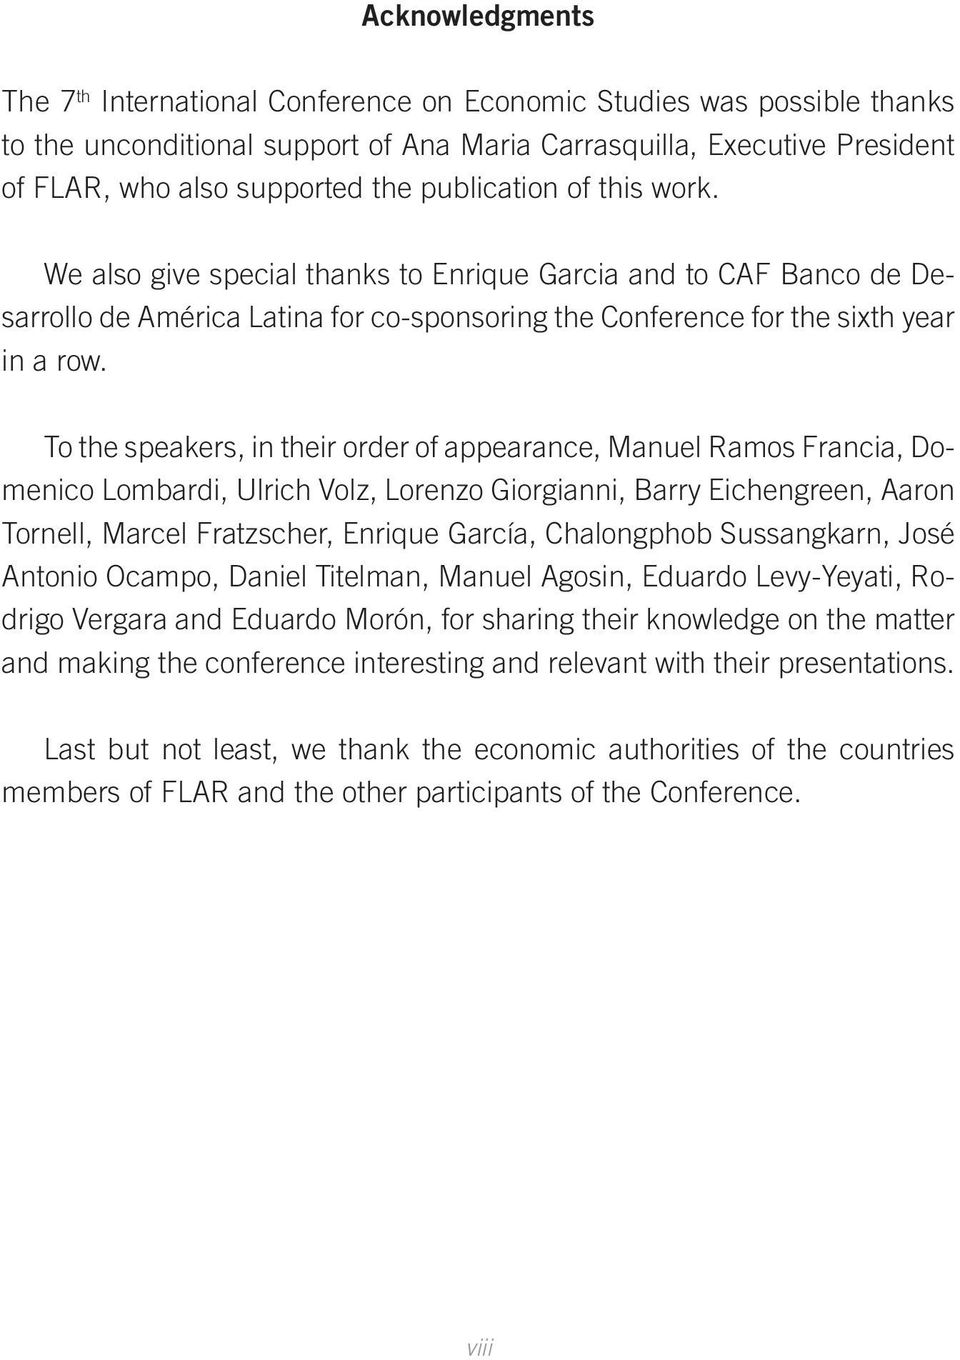 To the speakers, in their order of appearance, Manuel Ramos Francia, Domenico Lombardi, Ulrich Volz, Lorenzo Giorgianni, Barry Eichengreen, Aaron Tornell, Marcel Fratzscher, Enrique García,